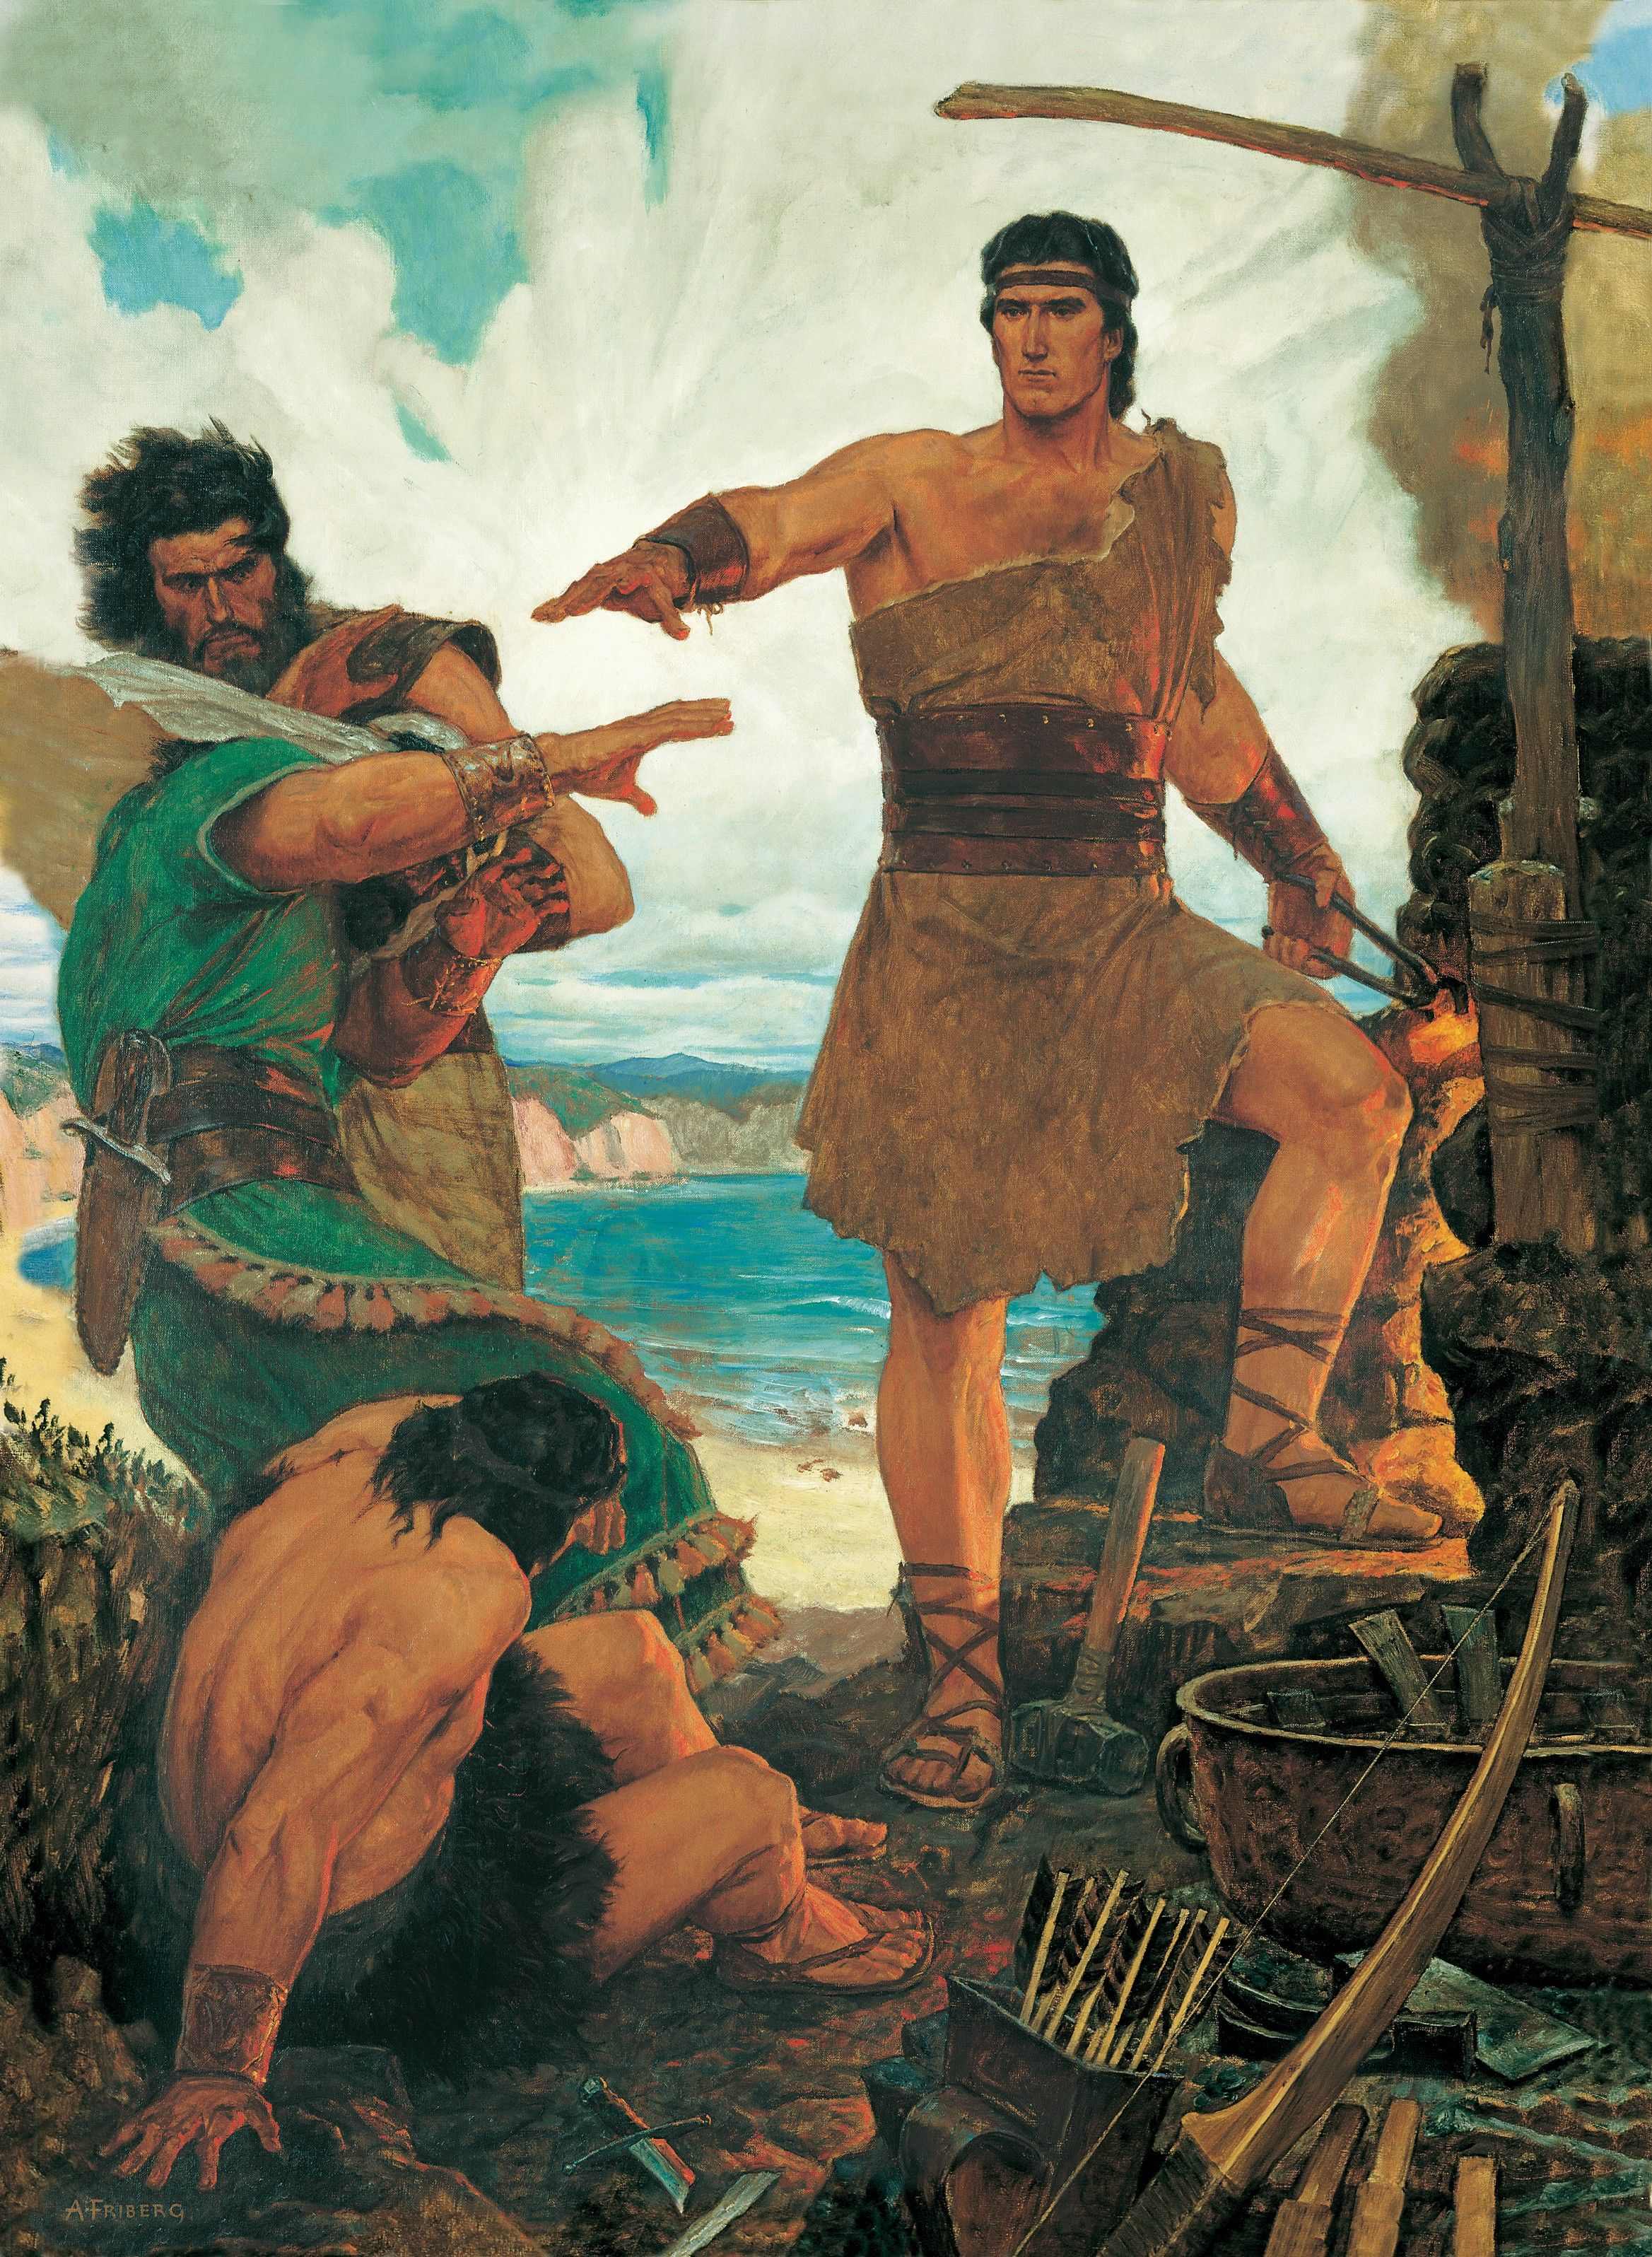 Nephi Subdues His Rebellious Brothers (Nephi Rebuking His Rebellious Brothers), by Arnold Friberg (62044); GAK 303; GAB 70; Primary manual 3-37; Primary manual 4-18; 1 Nephi 17:15–55